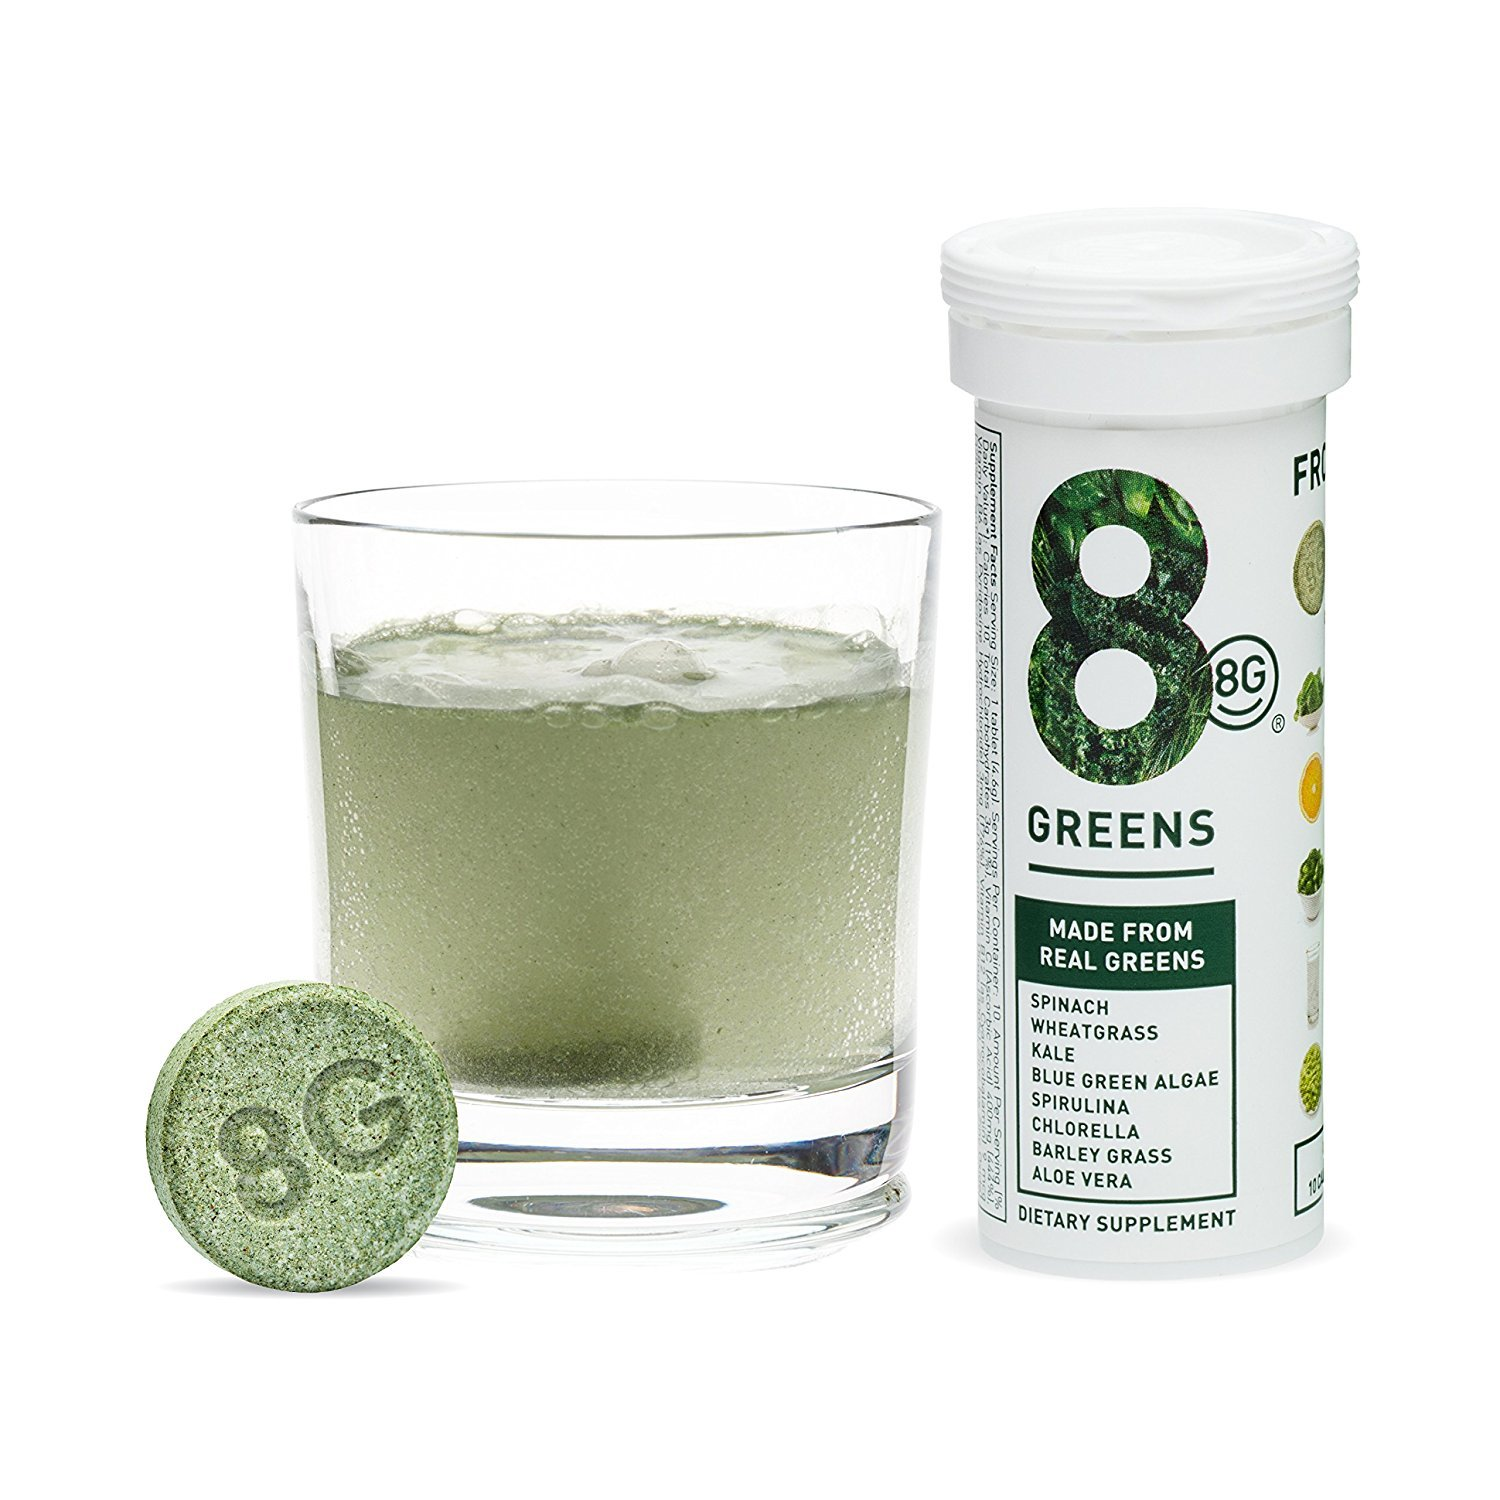 8Greens Effervescent Super Greens Dietary Supplement - 8 Essential Healthy Real Greens in 1-10 Tablets (1 Tube)